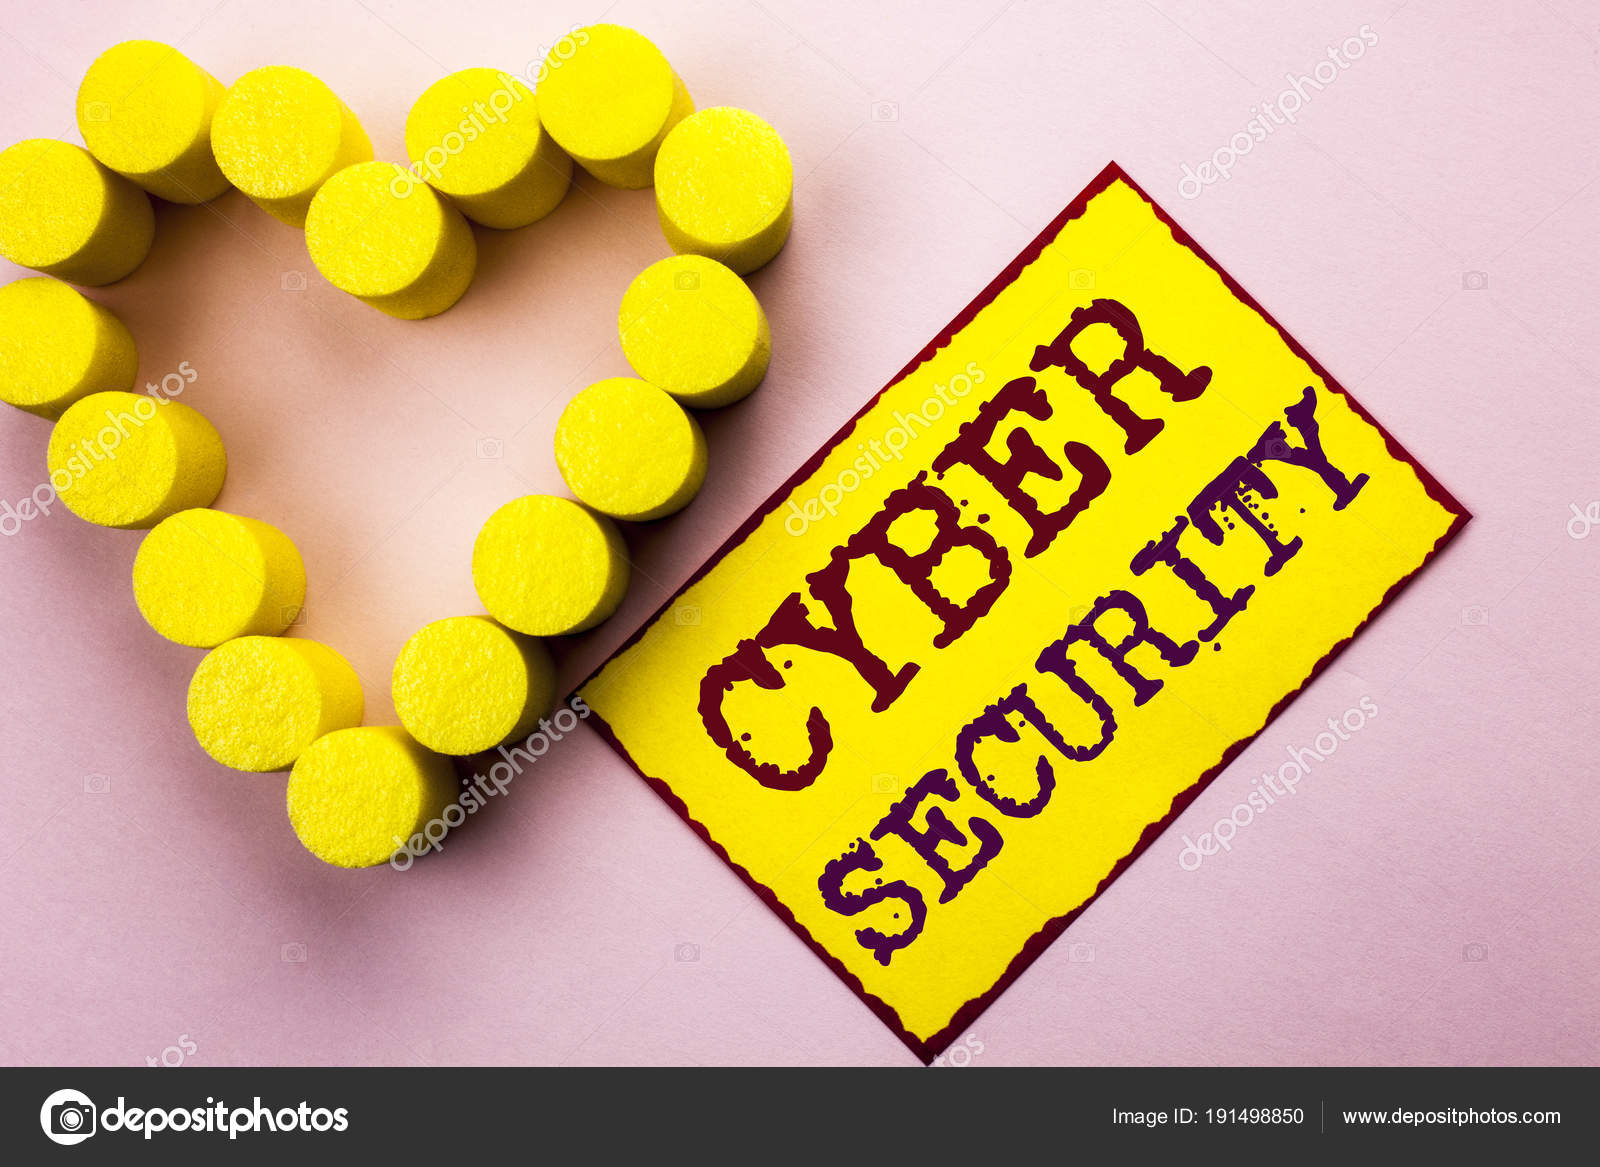 cyber love meaning